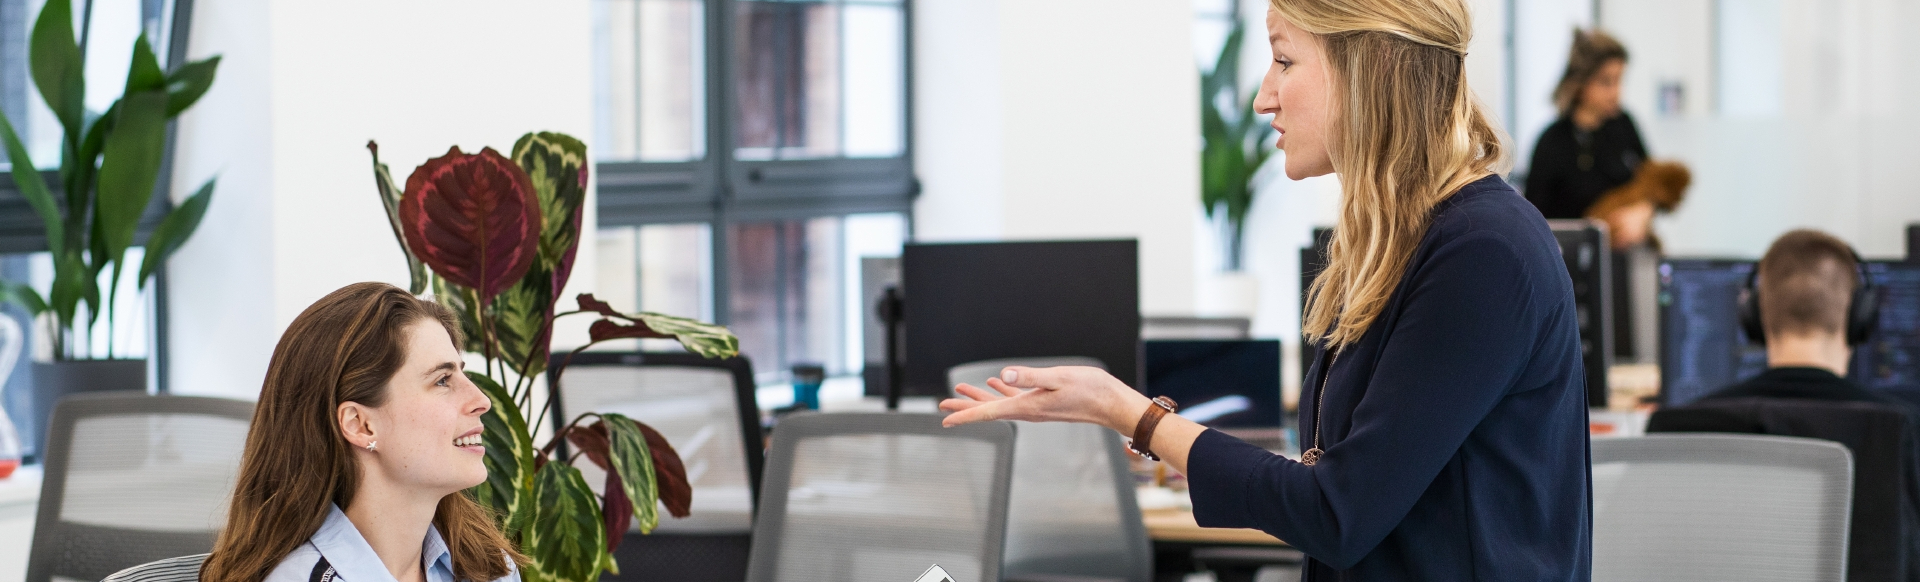 Two colleagues sitting down and chatting in a London office